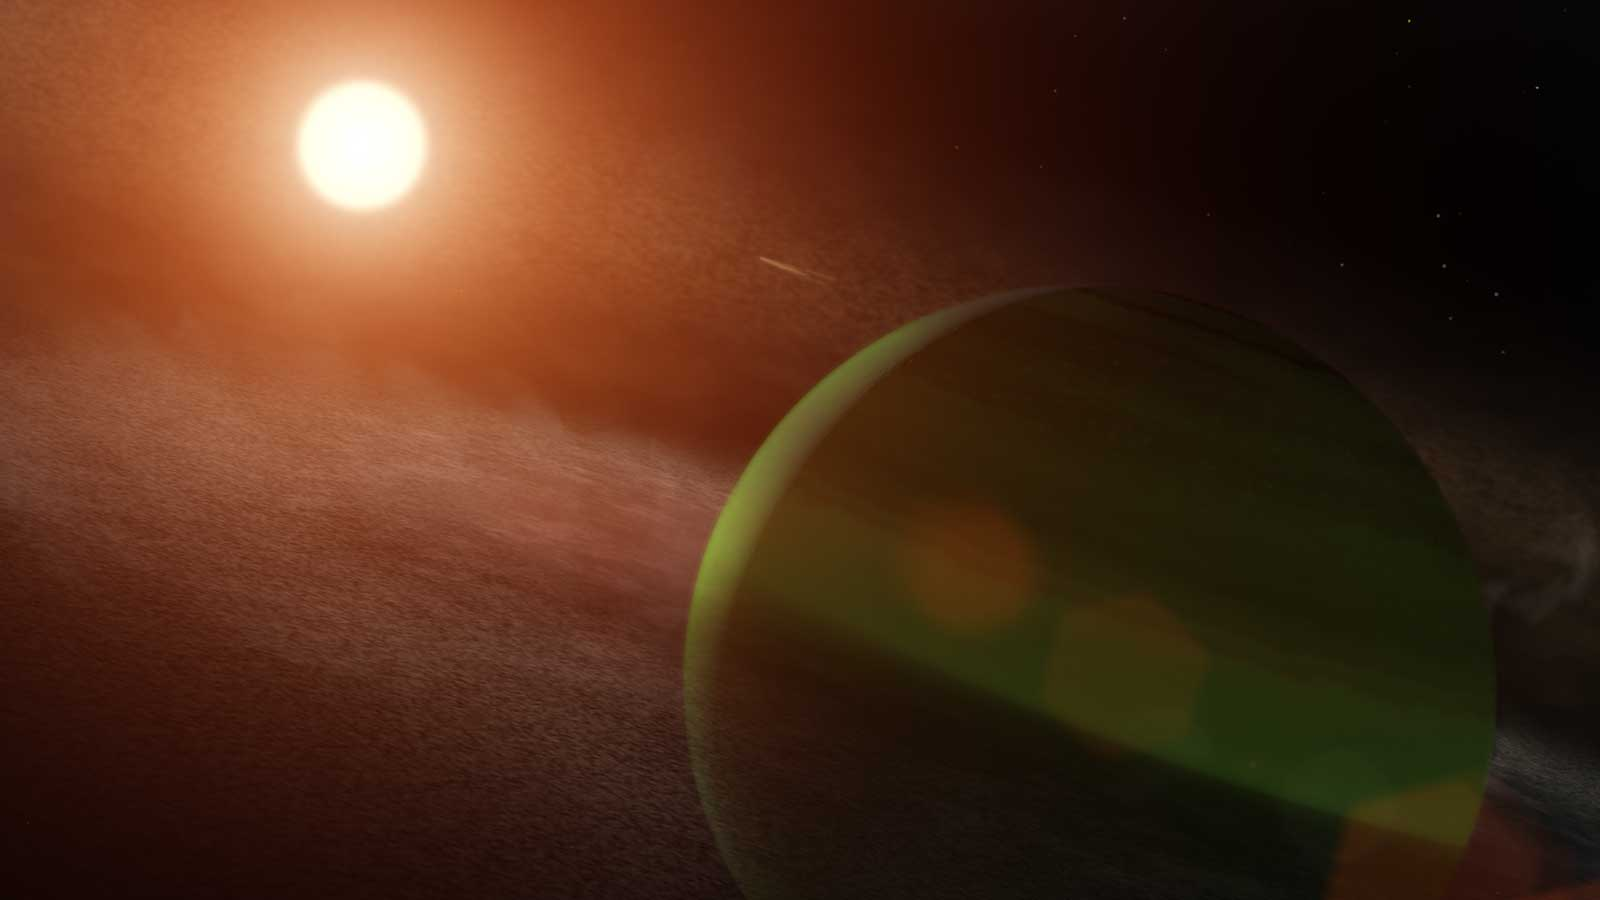 slide 5 - A greenish exoplanet is shown being blasted by its fiery young star